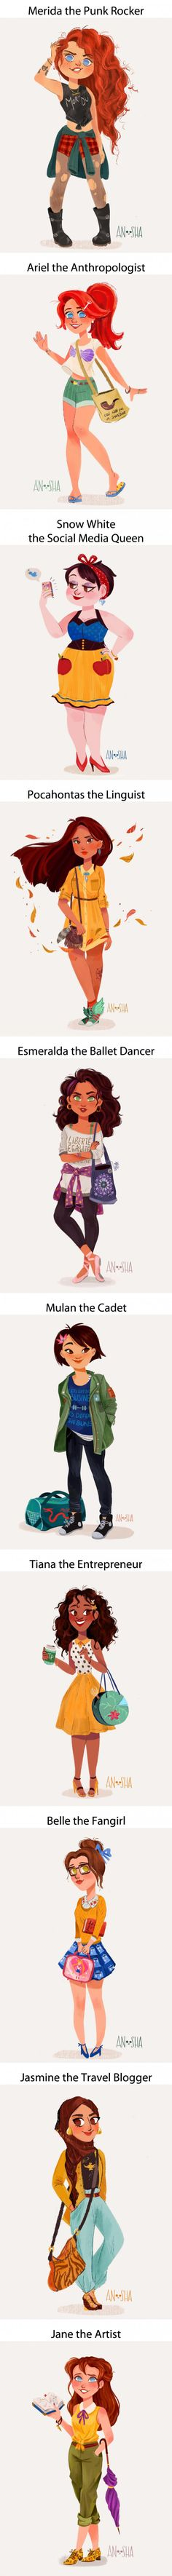 If Disney Princess Lived In The 21st Century As Modern Day Girls (by Anoosha Syed) i agree with everything except snowwhite